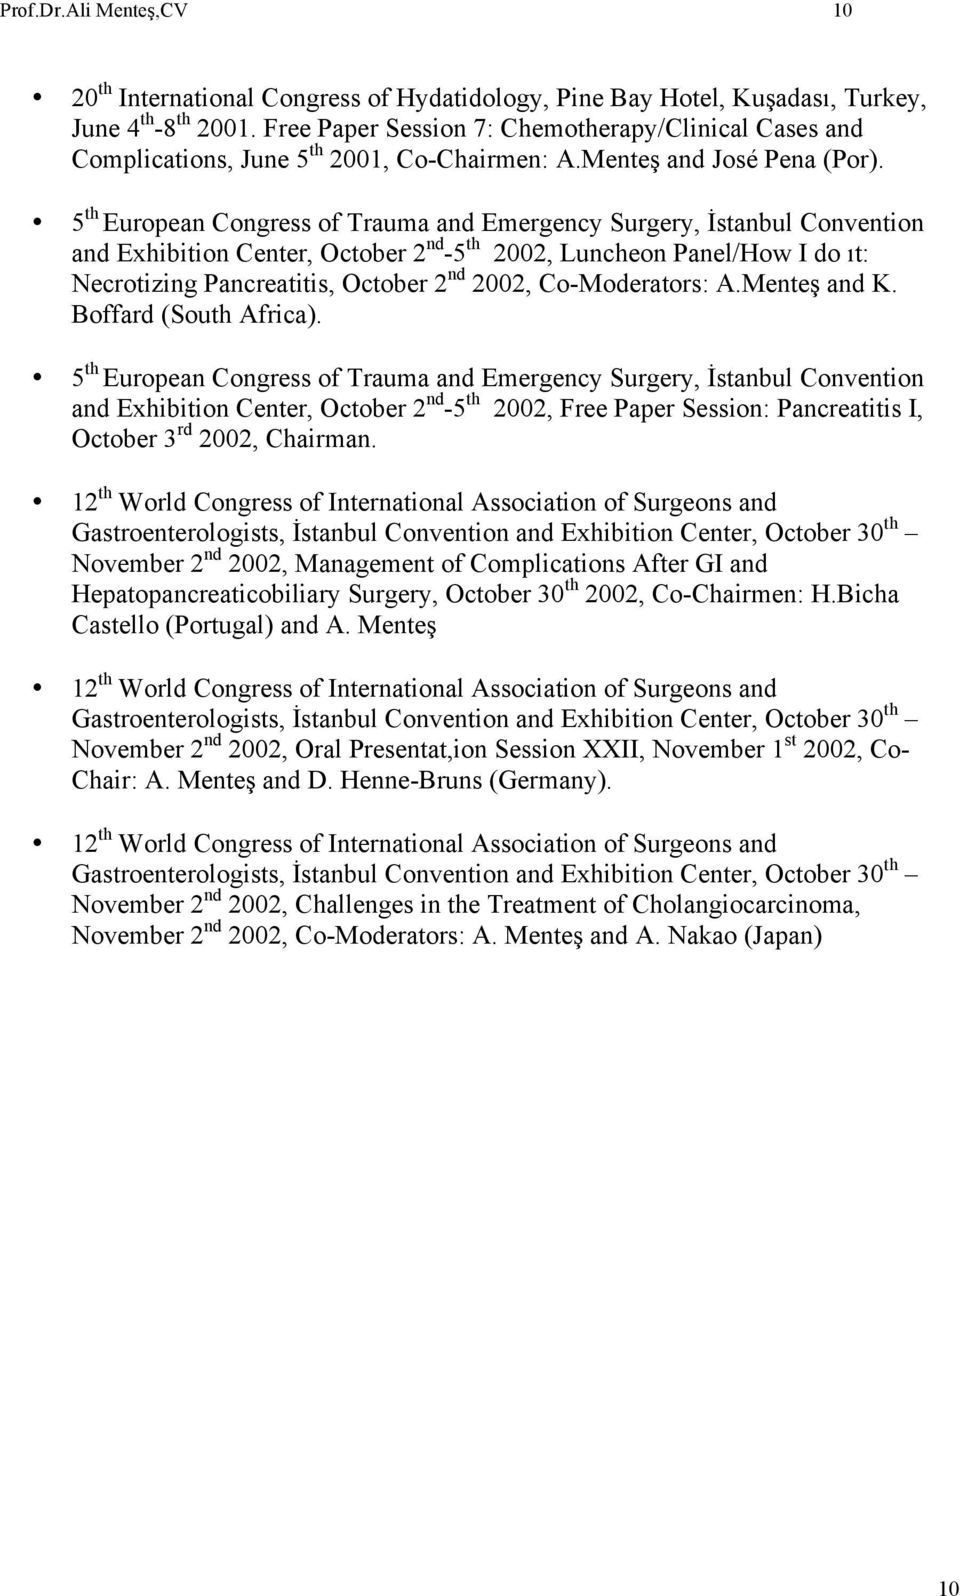 5 th European Congress of Trauma and Emergency Surgery, İstanbul Convention and Exhibition Center, October 2 nd -5 th 2002, Luncheon Panel/How I do ıt: Necrotizing Pancreatitis, October 2 nd 2002,